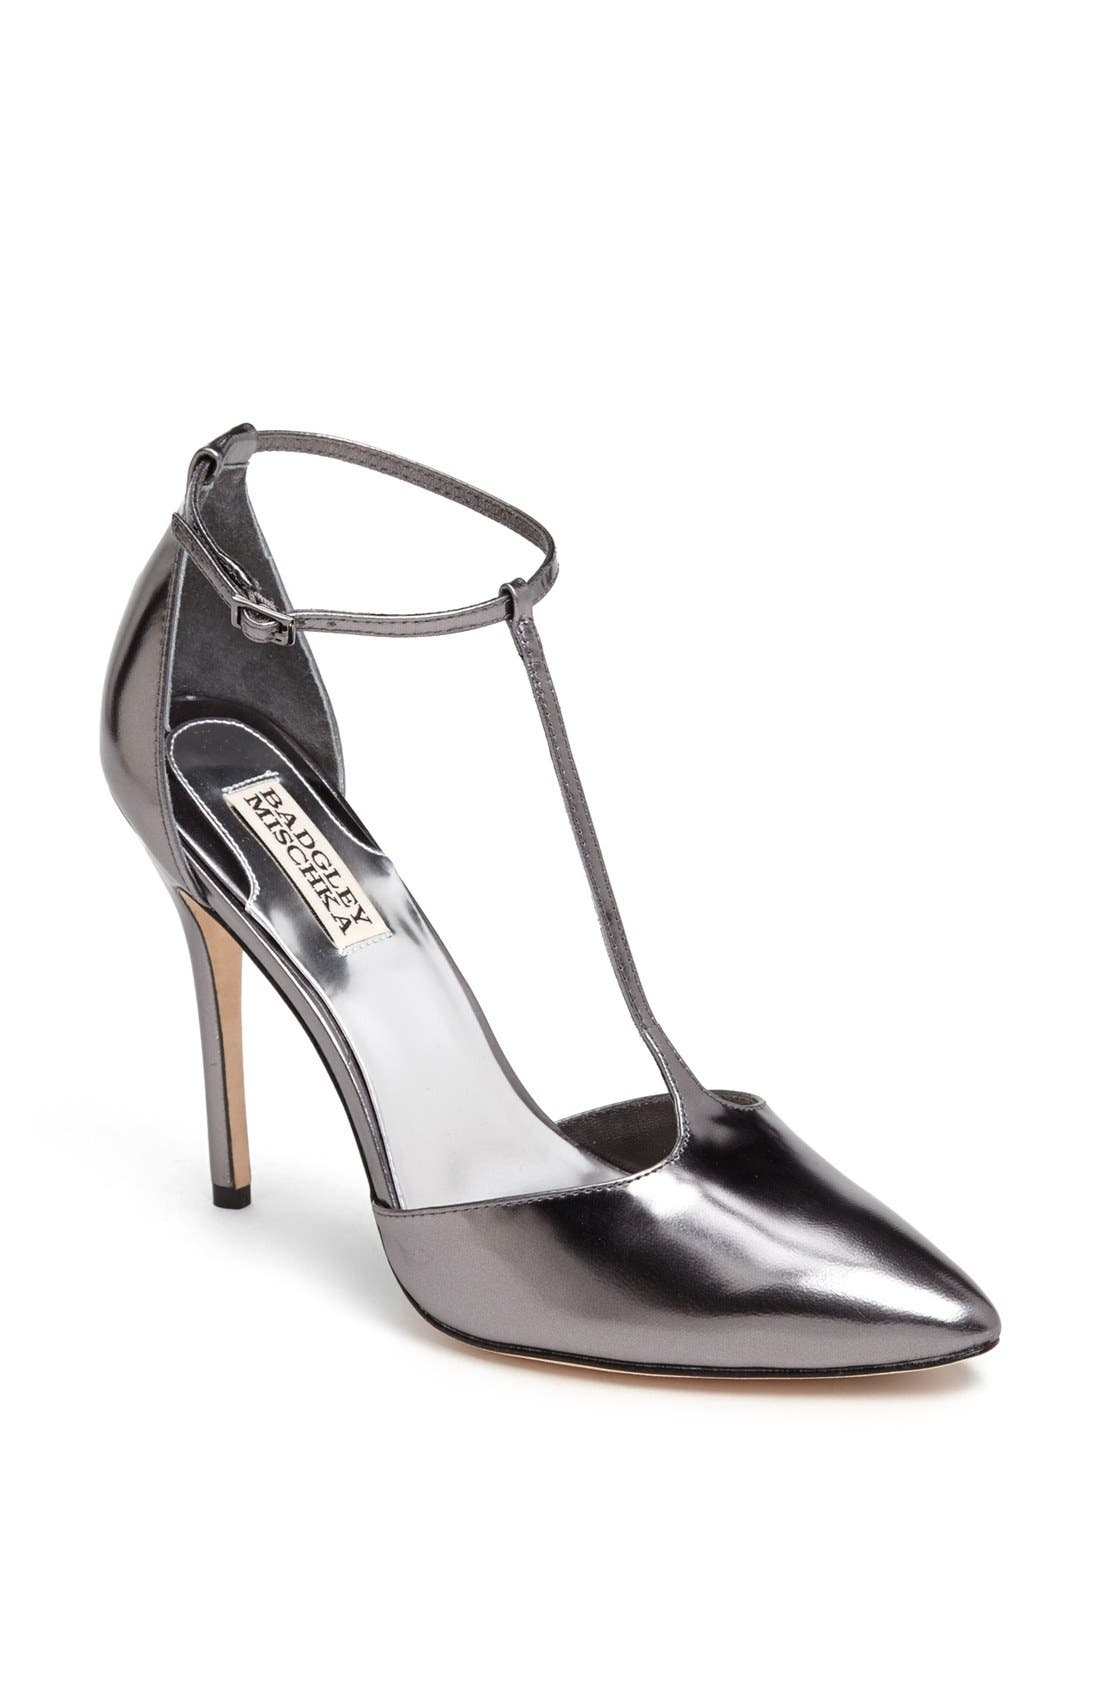 Main Image - Badgley Mischka 'Pila' Pump